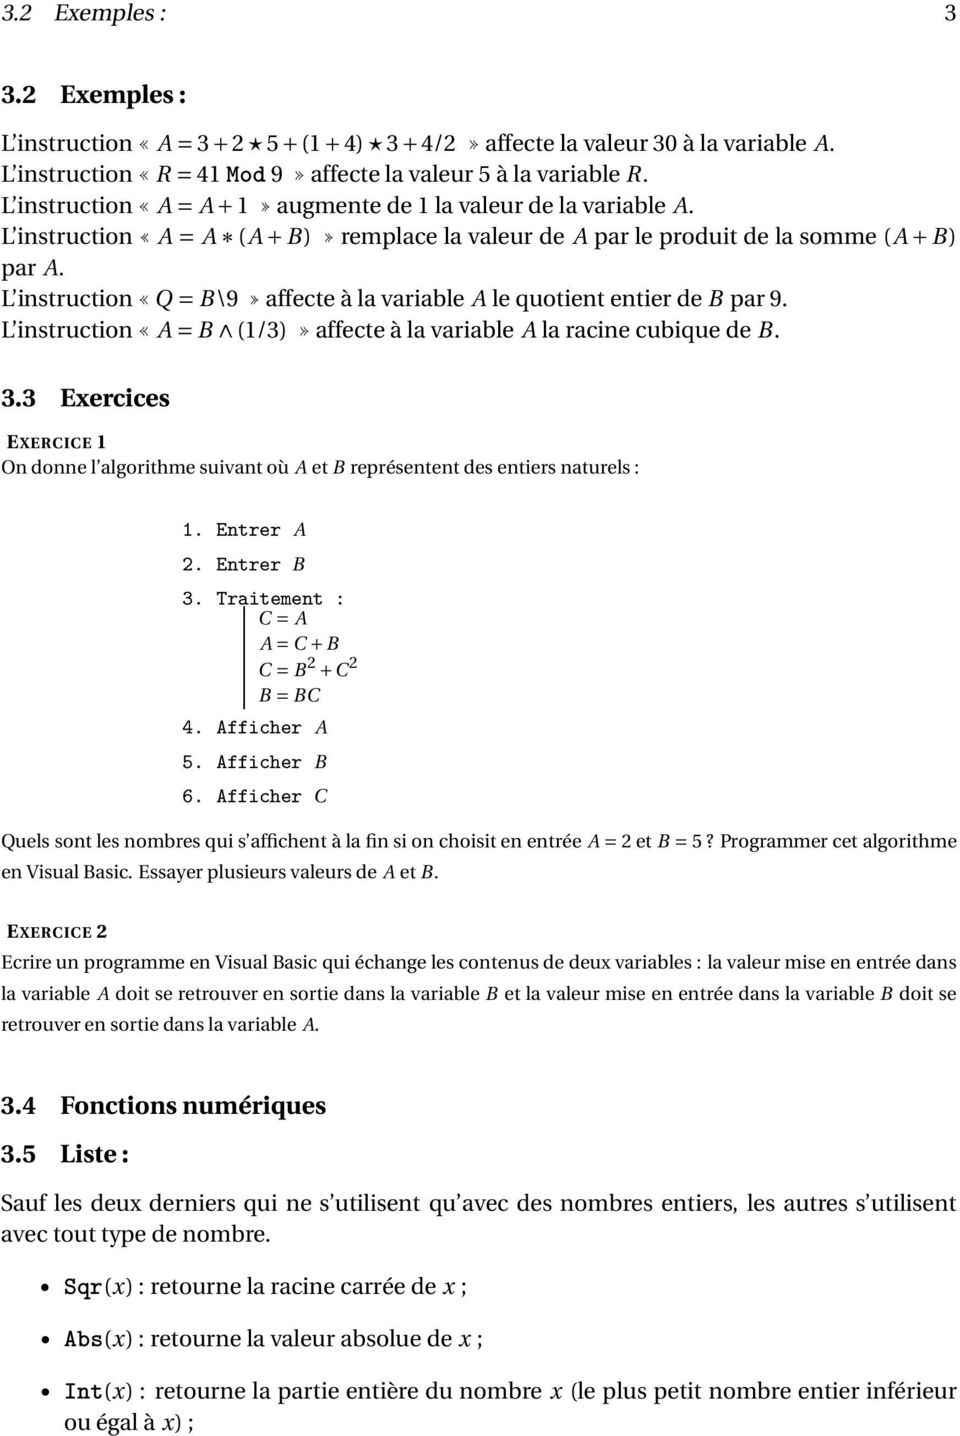 L instruction Q = B\9 affecte à la variable A le quotient entier de B par 9. L instruction A = B (1/3) affecte à la variable A la racine cubique de B. 3.